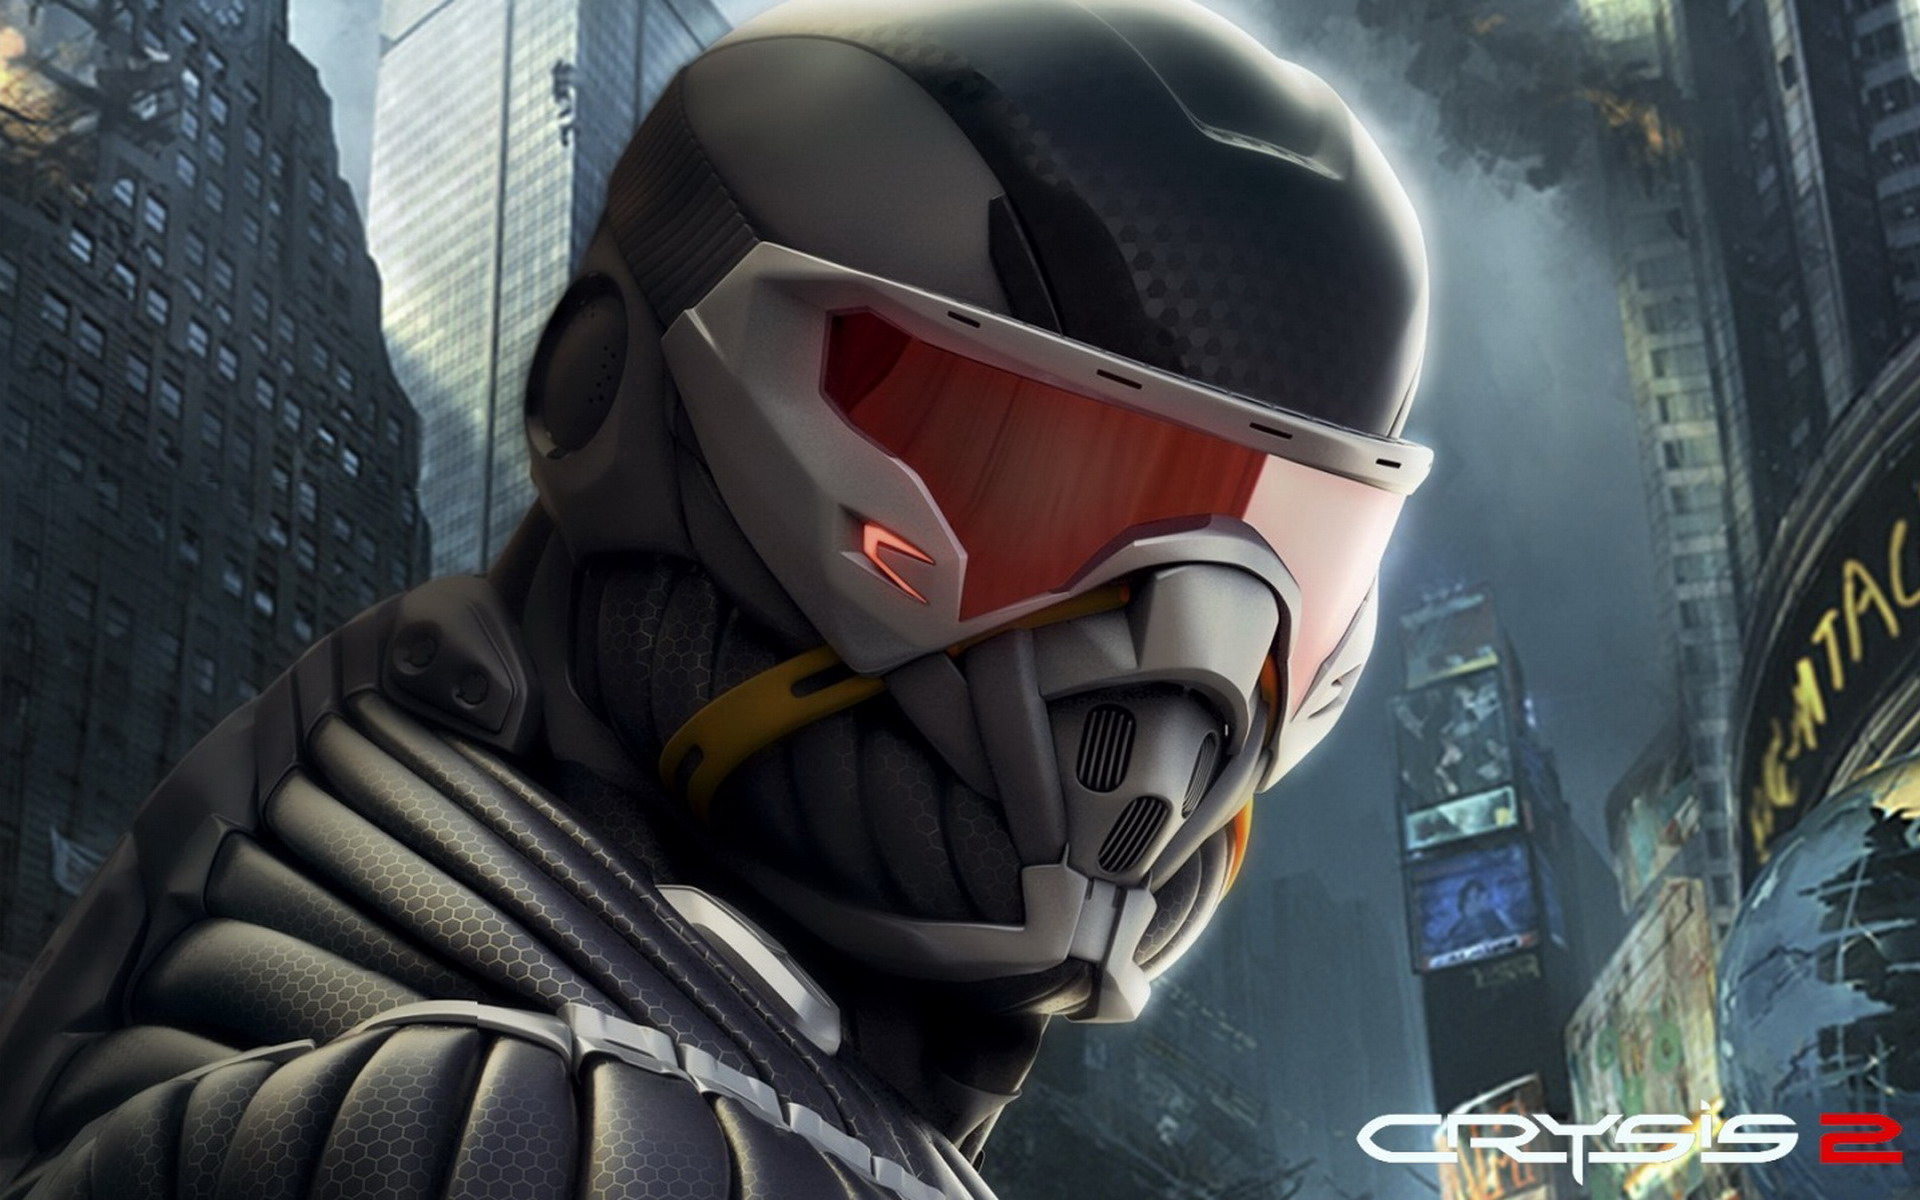 Más de Crysis 2 Multiplayer: Habilidades, Perks y Dog Tags [Video]